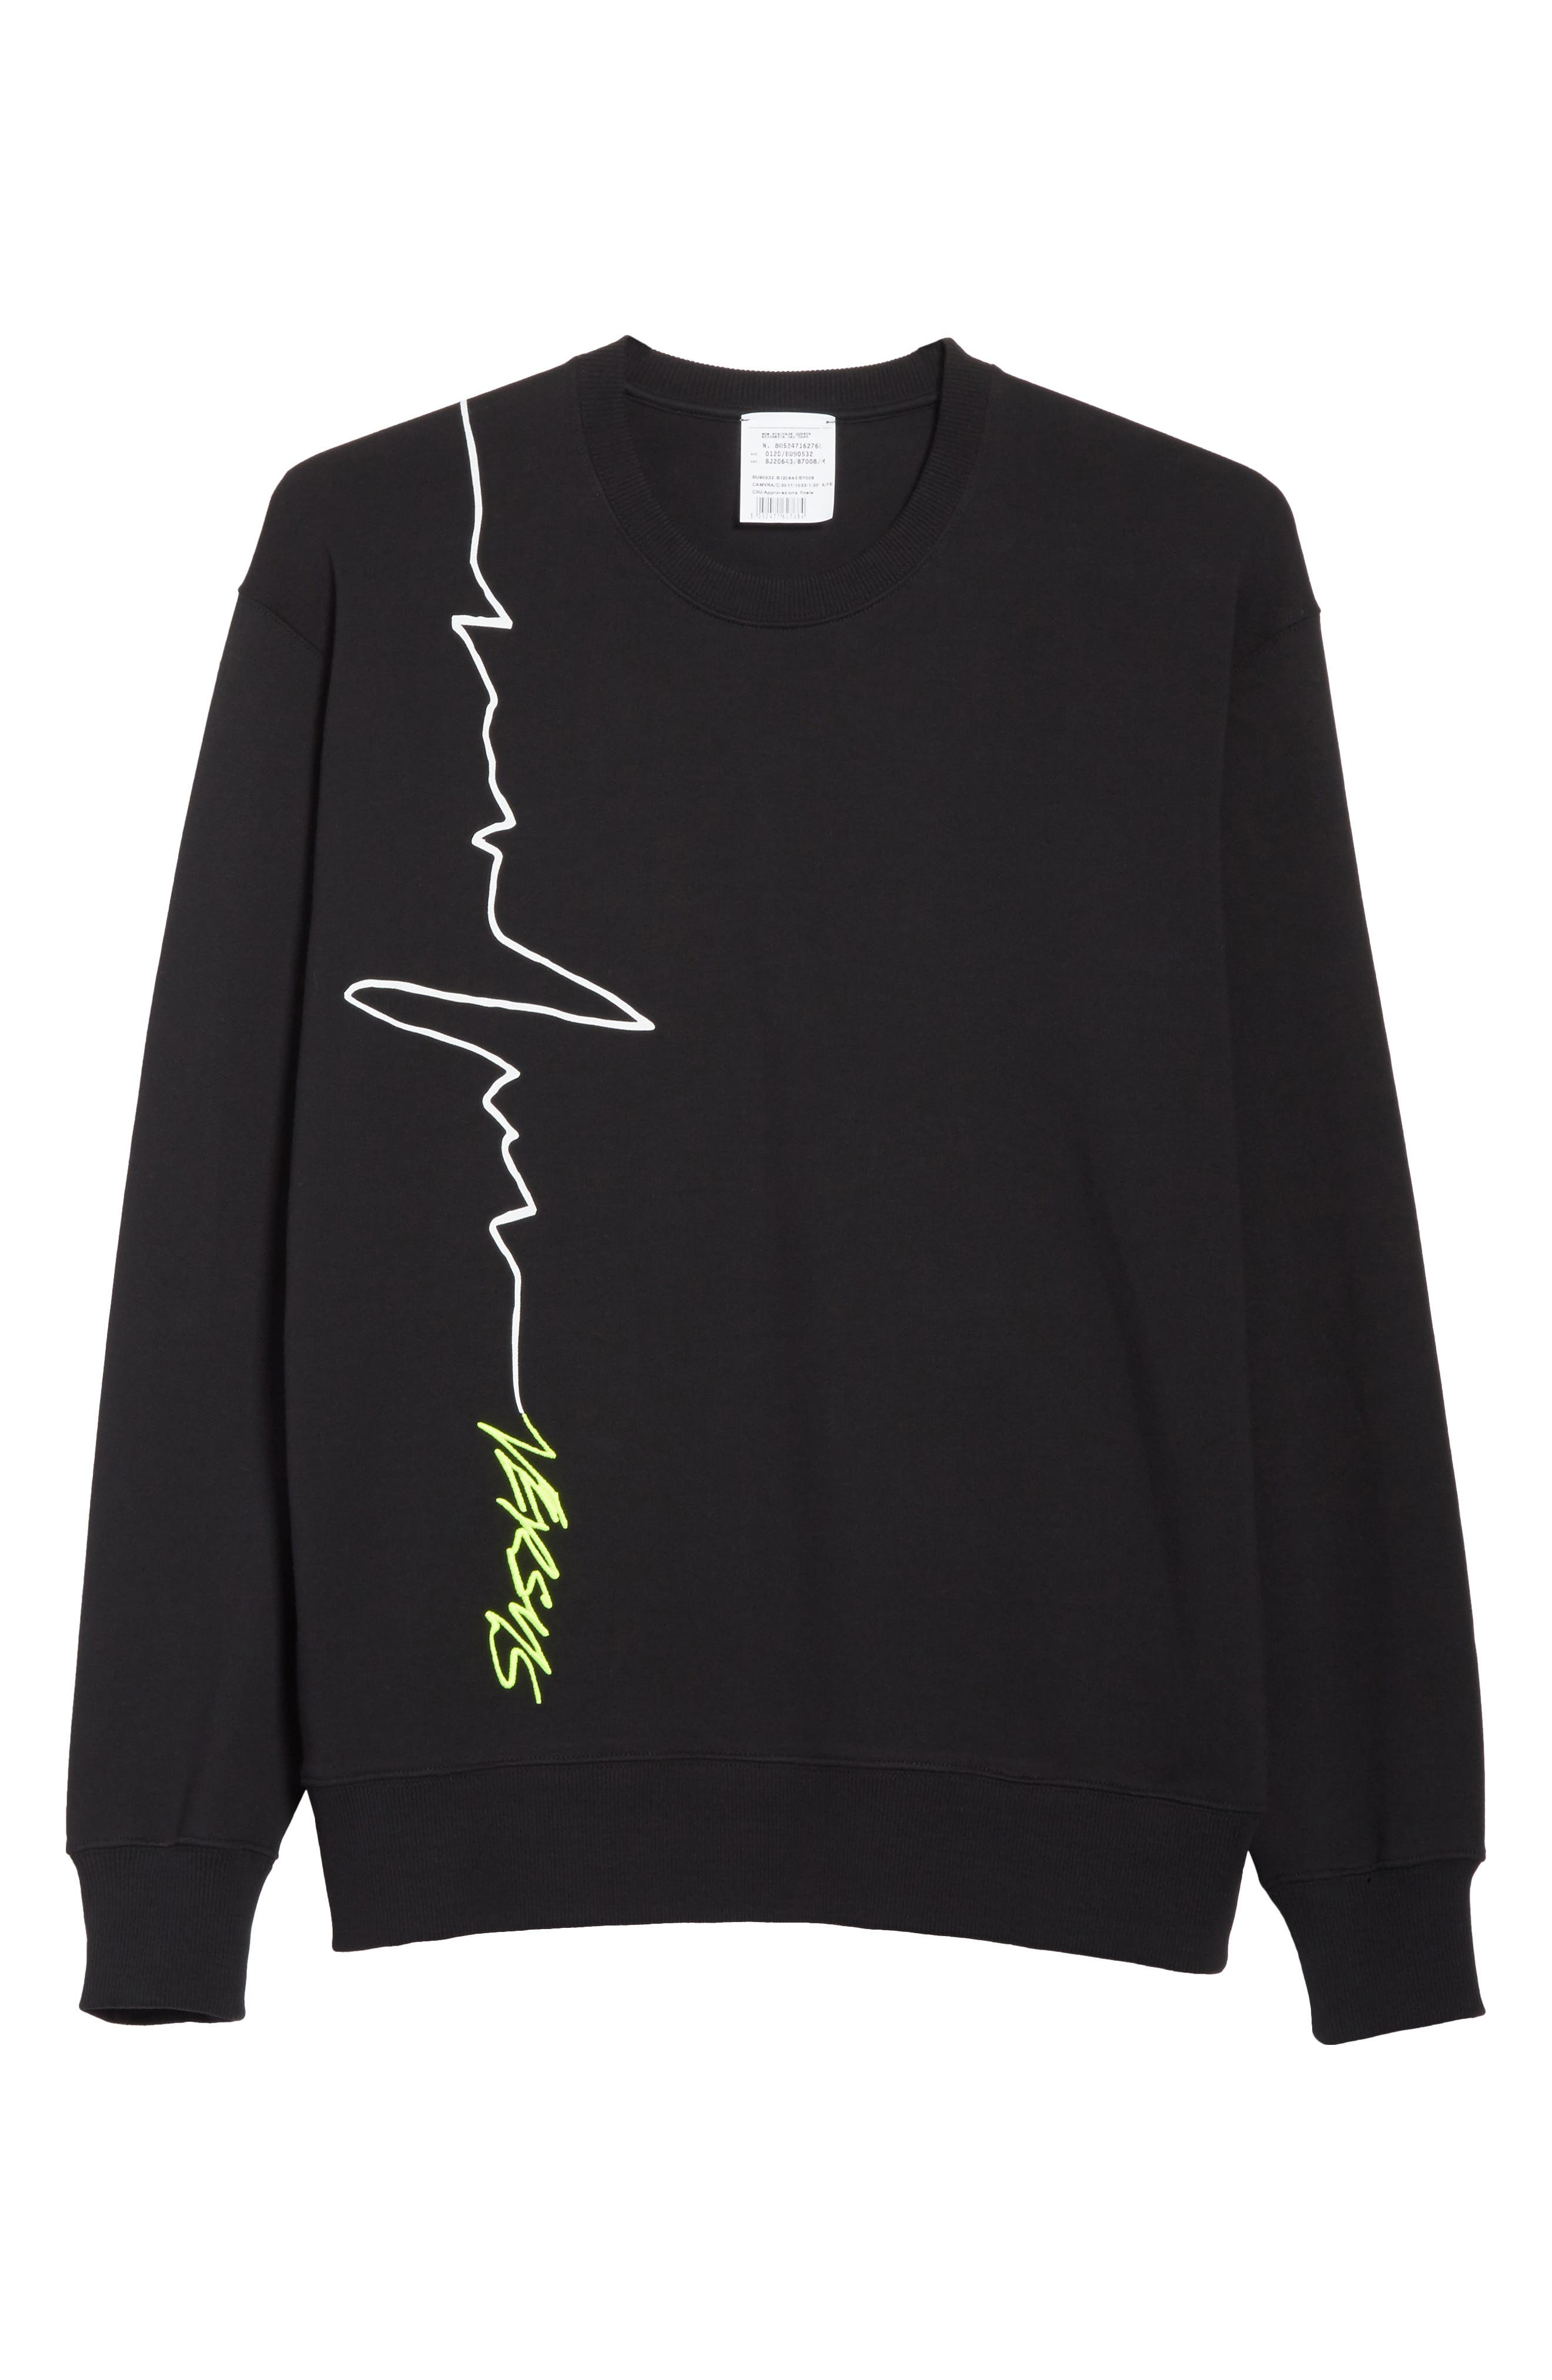 VERSUS by Versace Heartbeat Graphic Sweatshirt,                             Alternate thumbnail 6, color,